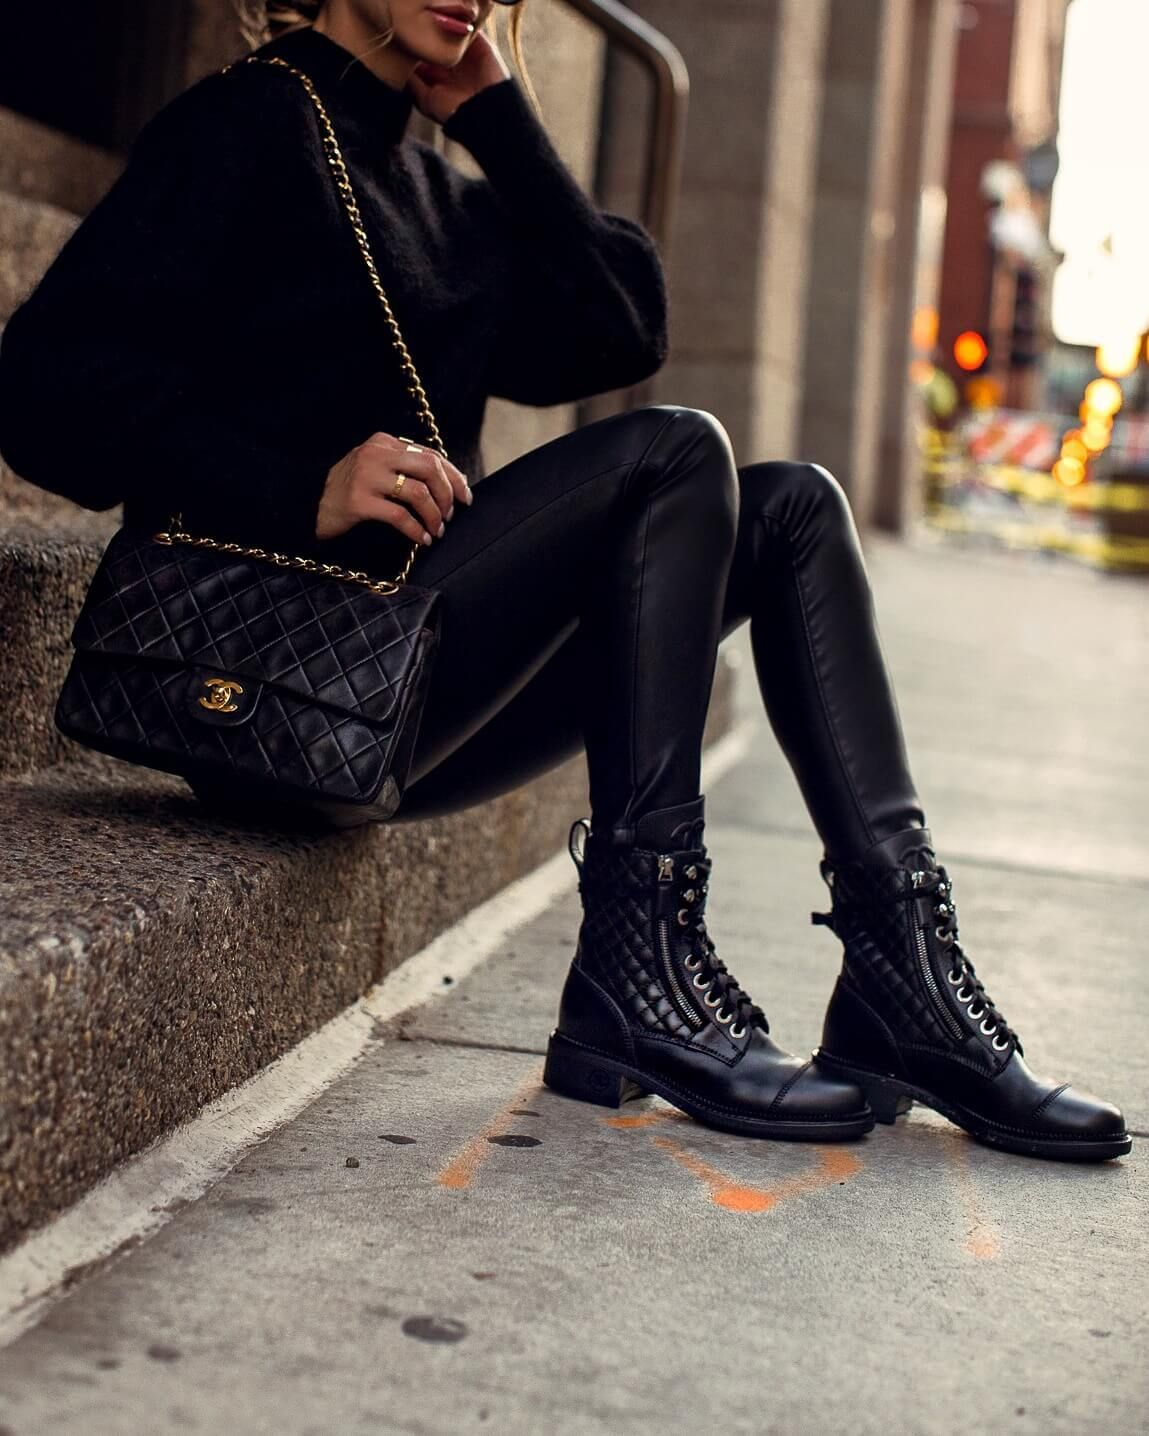 6 Ways to Wear Combat Boots This Fall Mia Mia Mine in